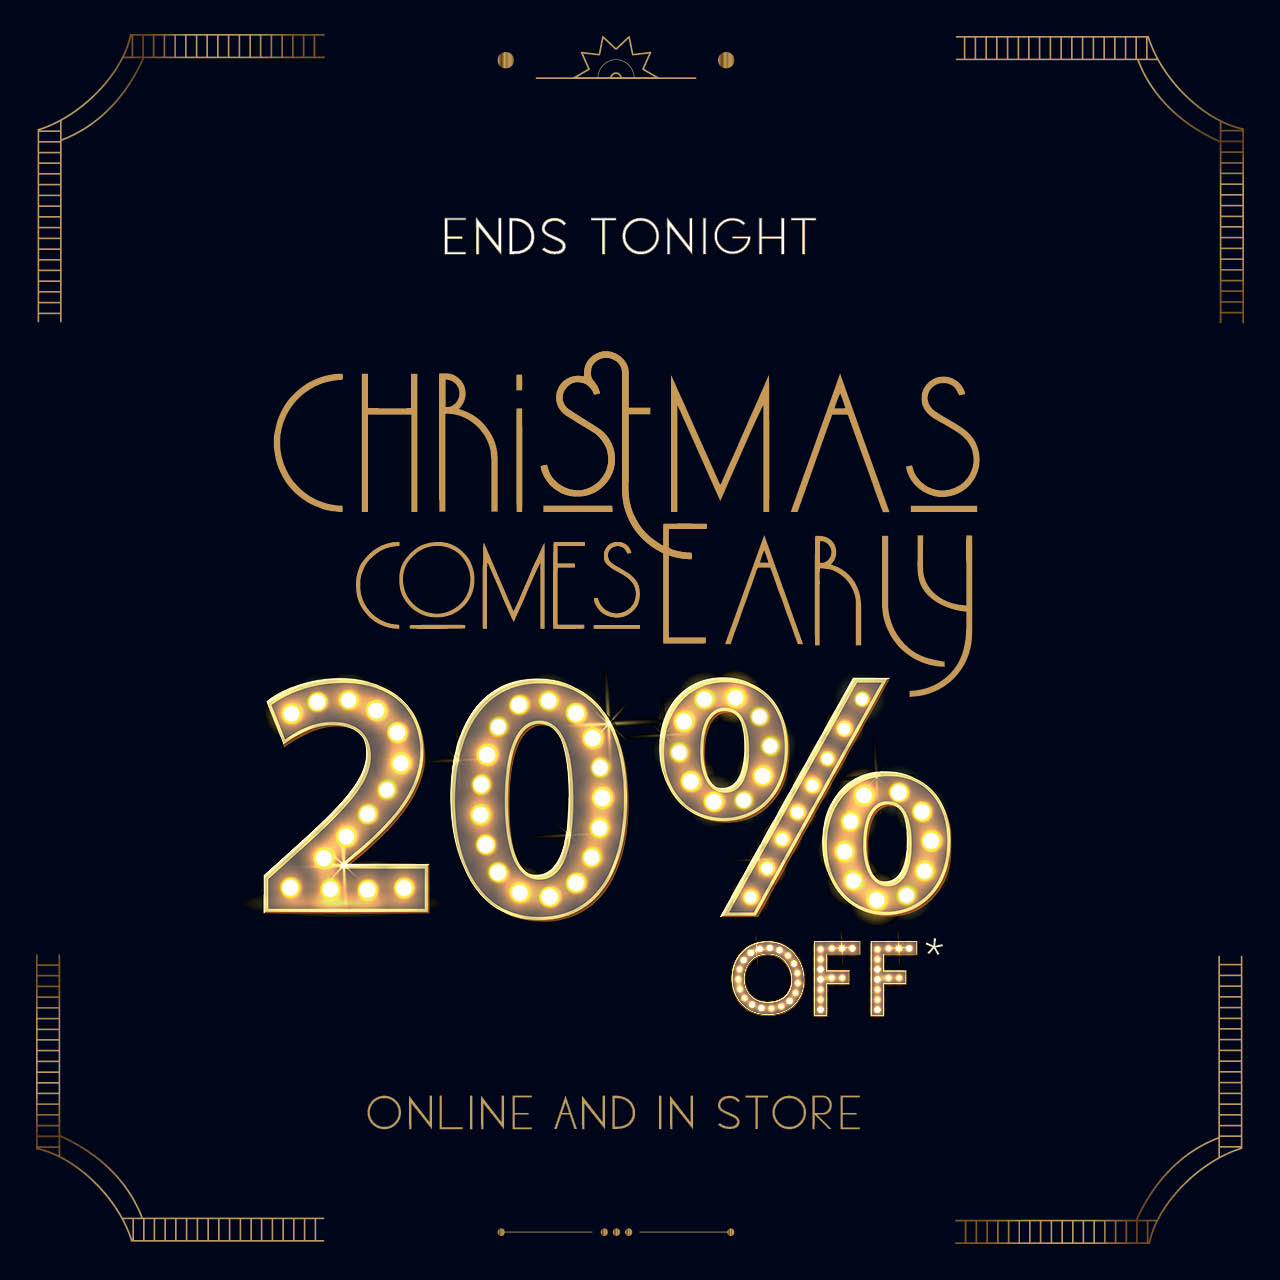 Brown Thomas- Jacqueline, Hurry! You still have time for 20% off